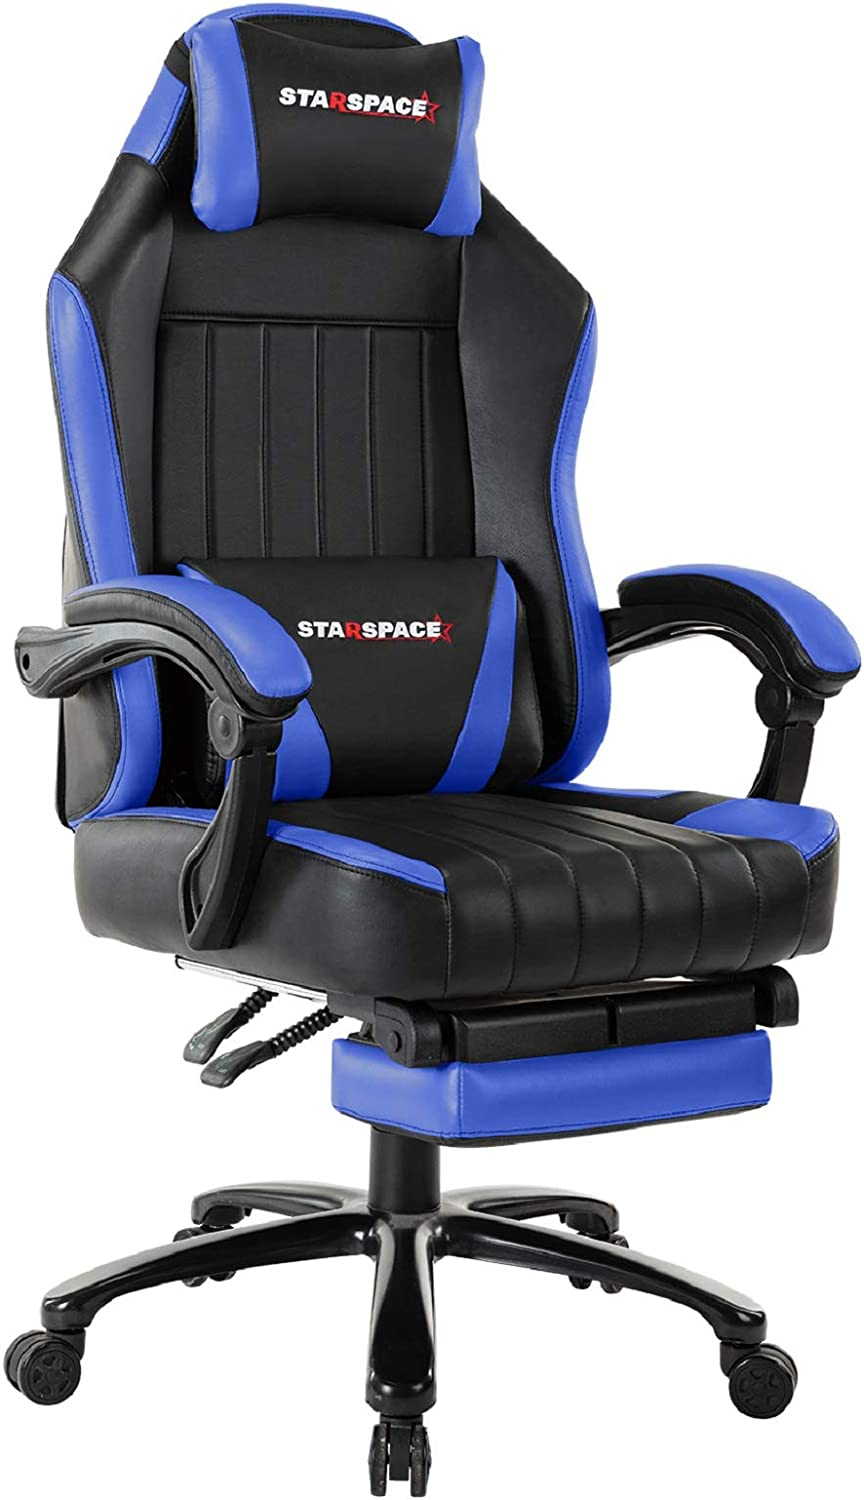 STARSPACE Big & Tall 350lb Gaming Chair Massage- Retractable Footrest Metal Base High Back Reclining Racing Executive Computer Desk Office Chair Adjustable Back Angle (Blue)